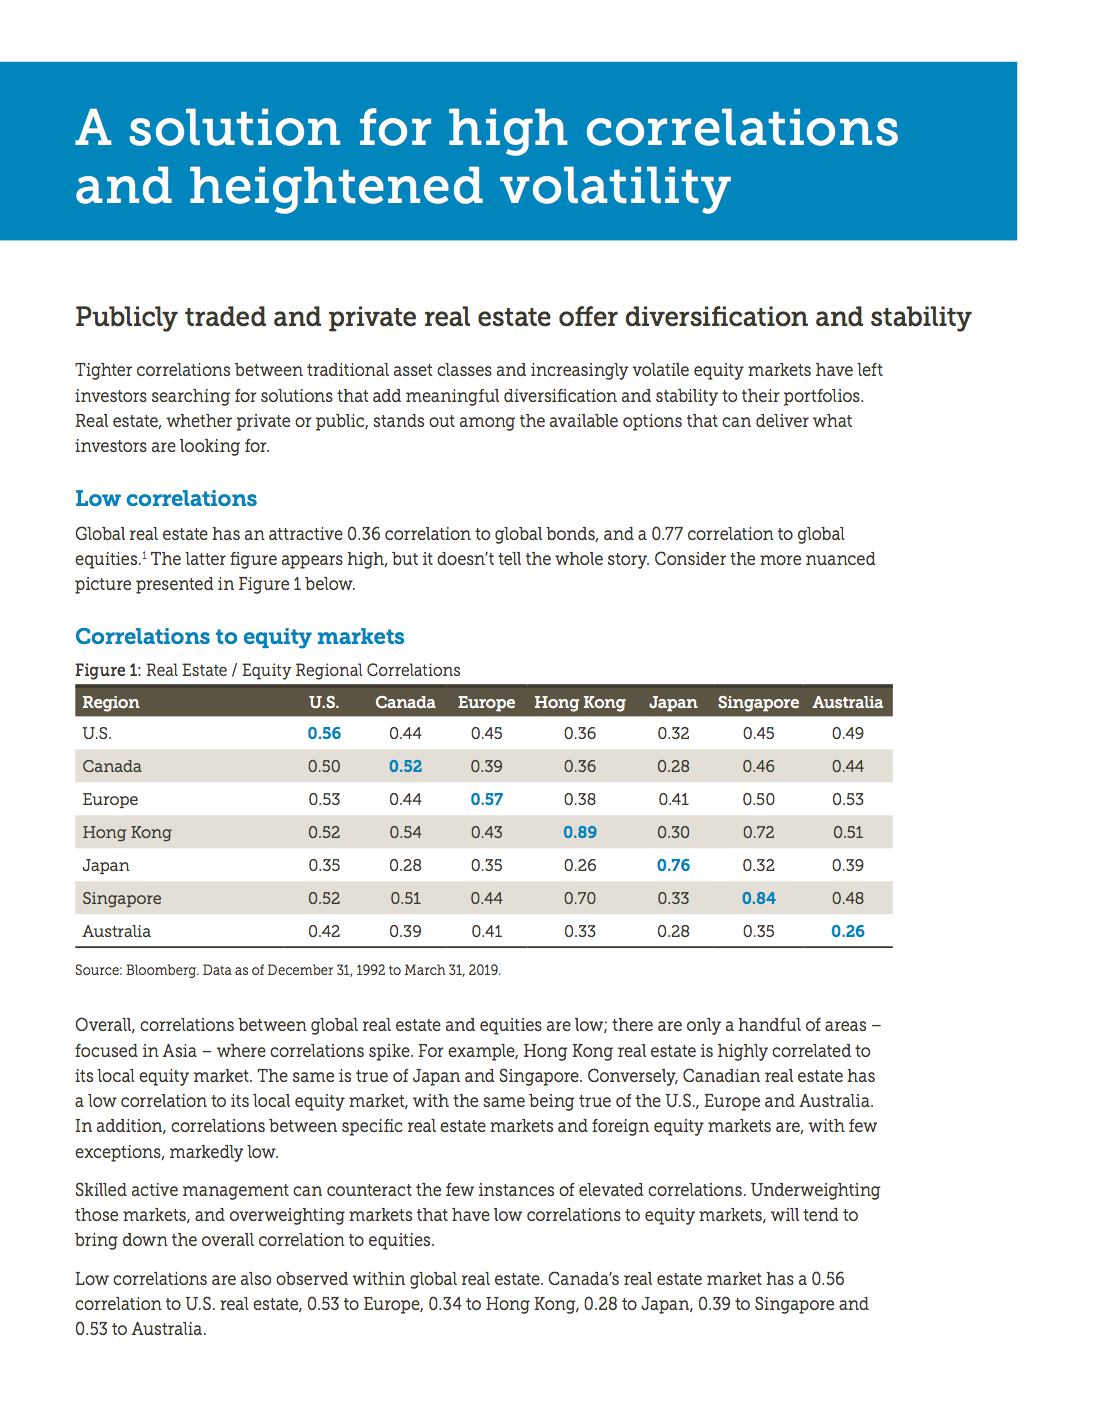 A solution for high correlations and heightened volatility